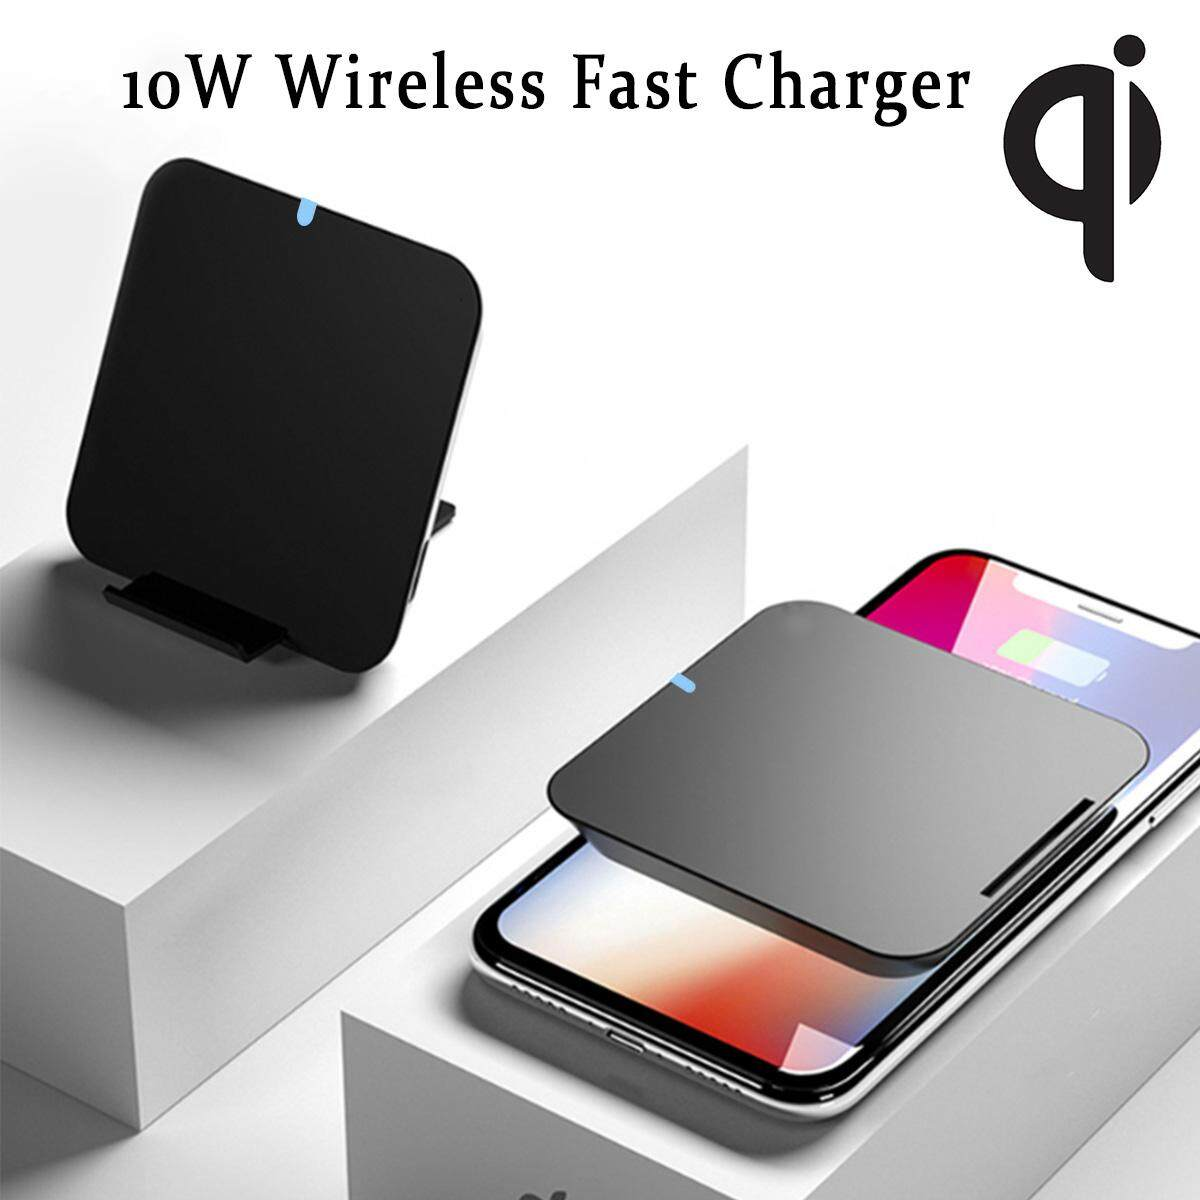 【Free Shipping + Flash Deal】10W Wireless Fast Charger 2 In 1 Portable Power  Bank Qi Charging Pad For Iphone